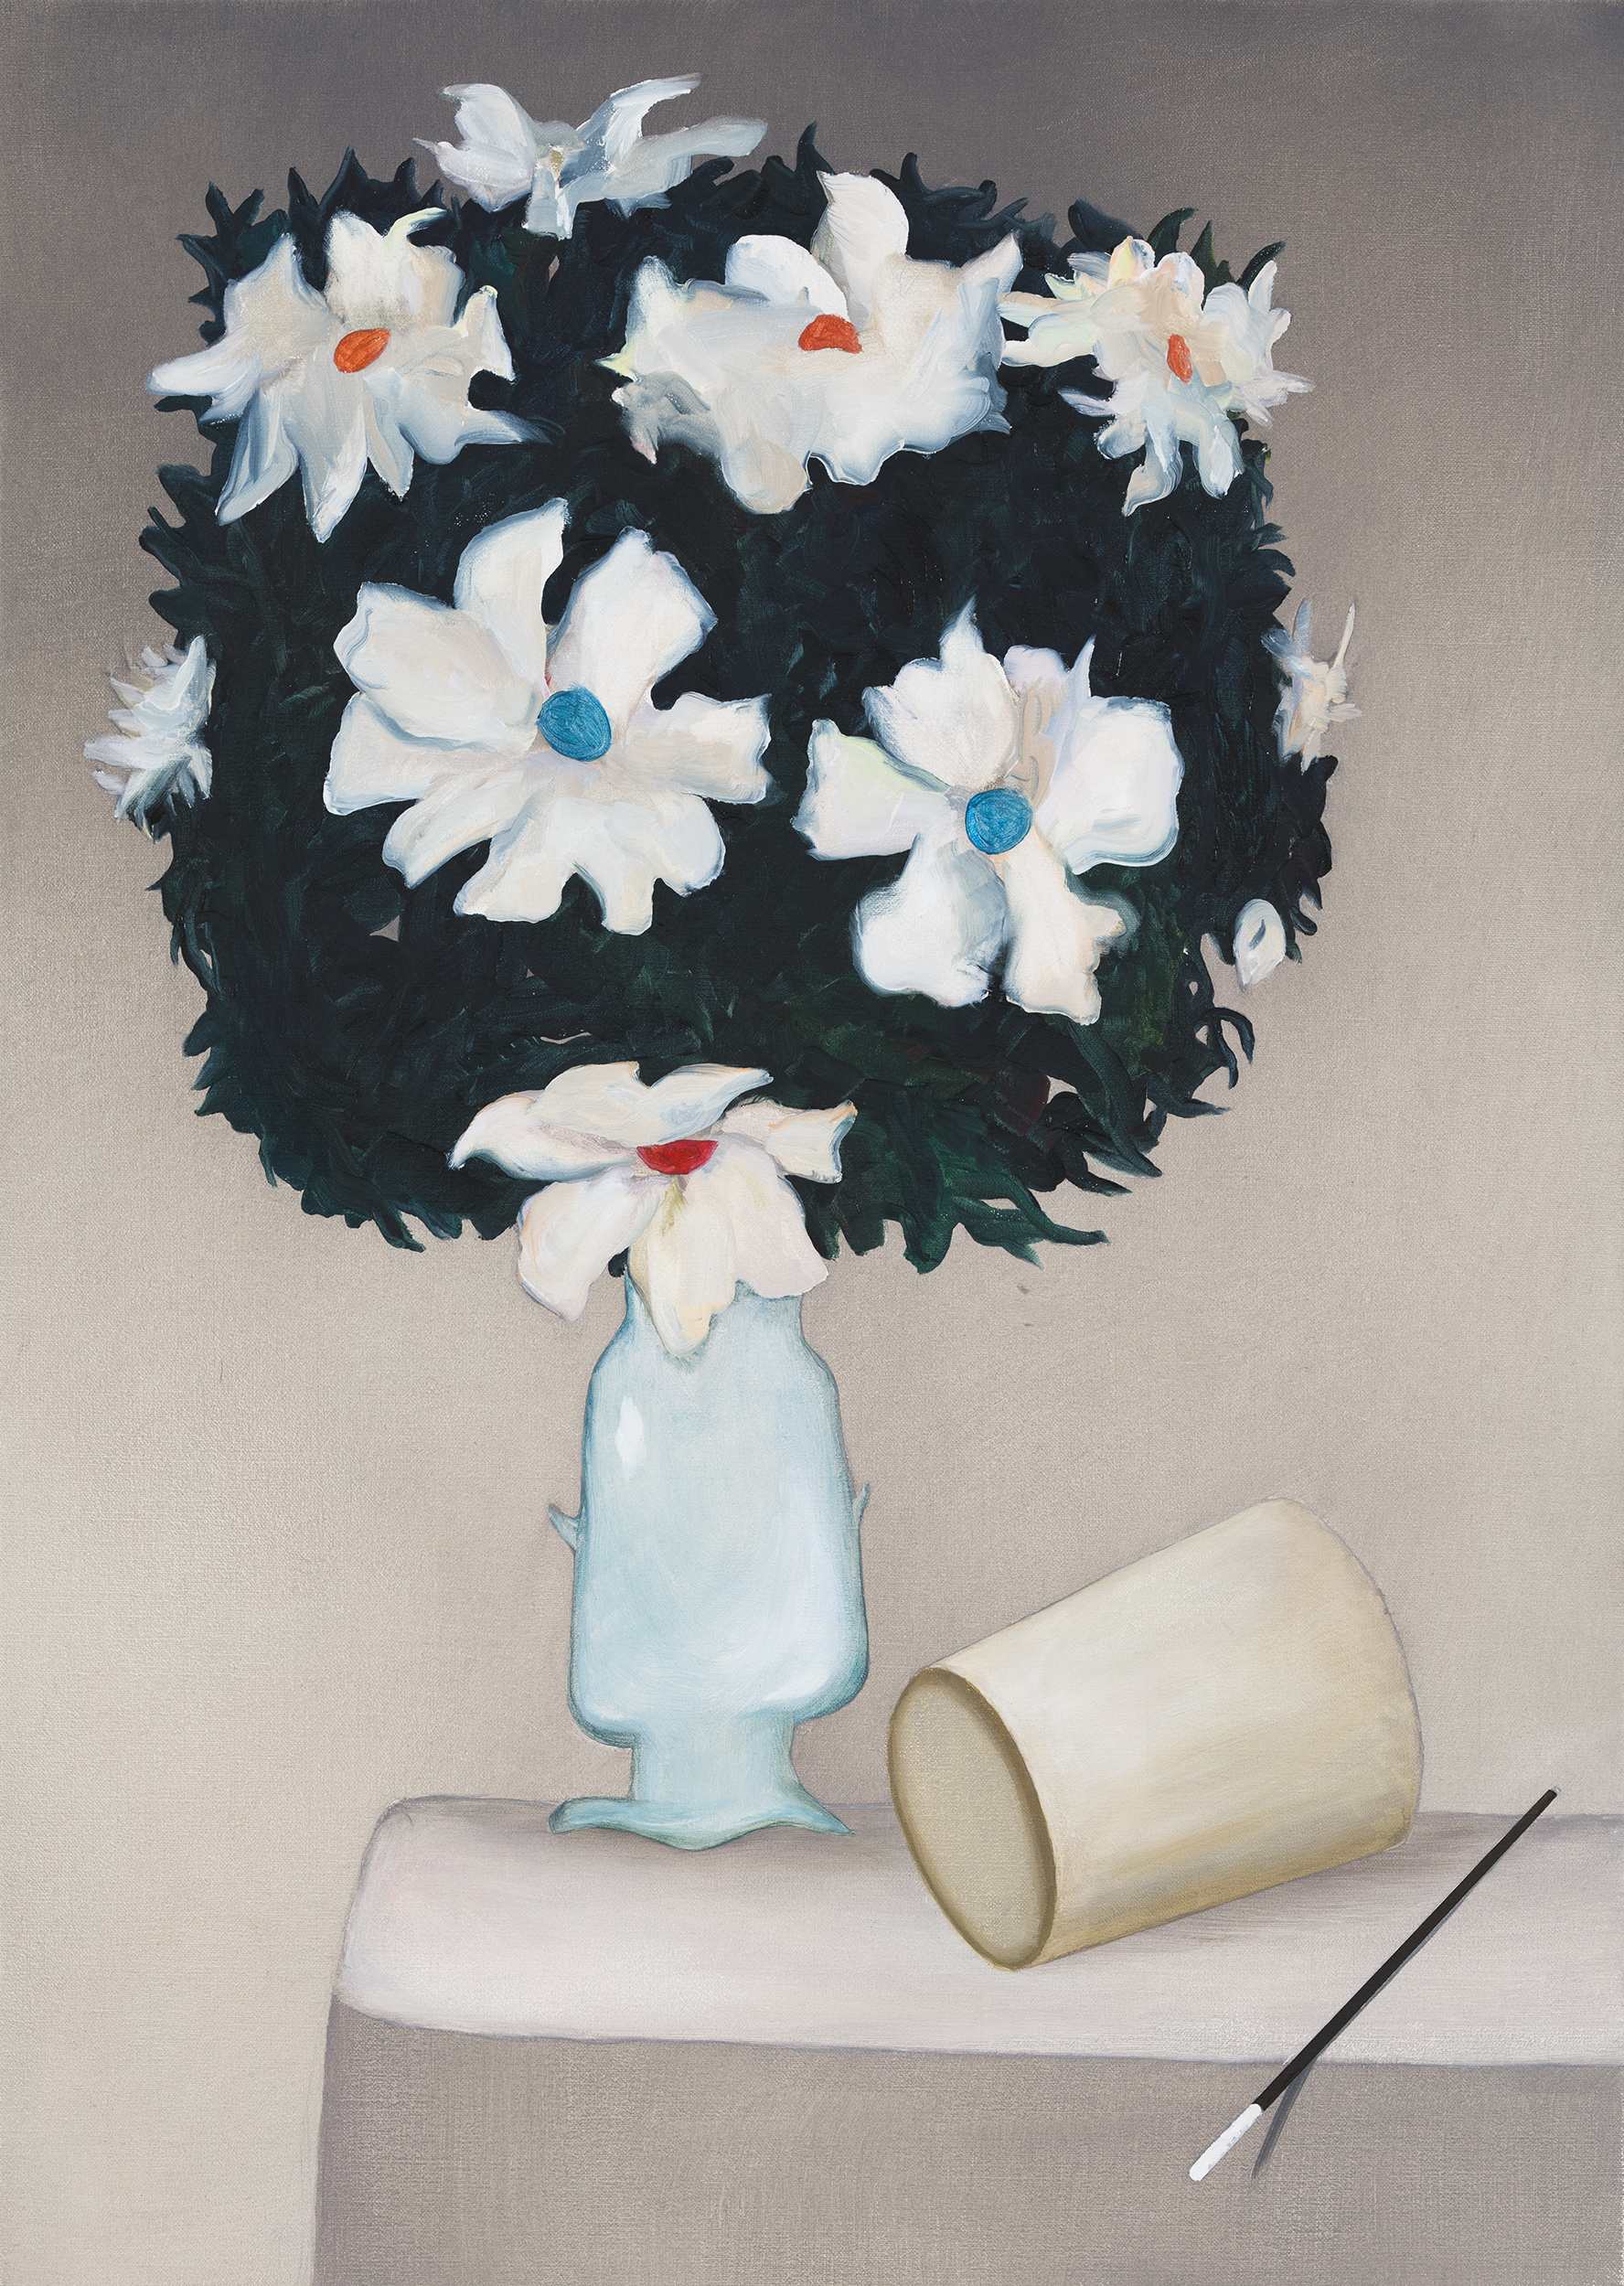 Magic Still Life II, painting by Wouter van Riessen